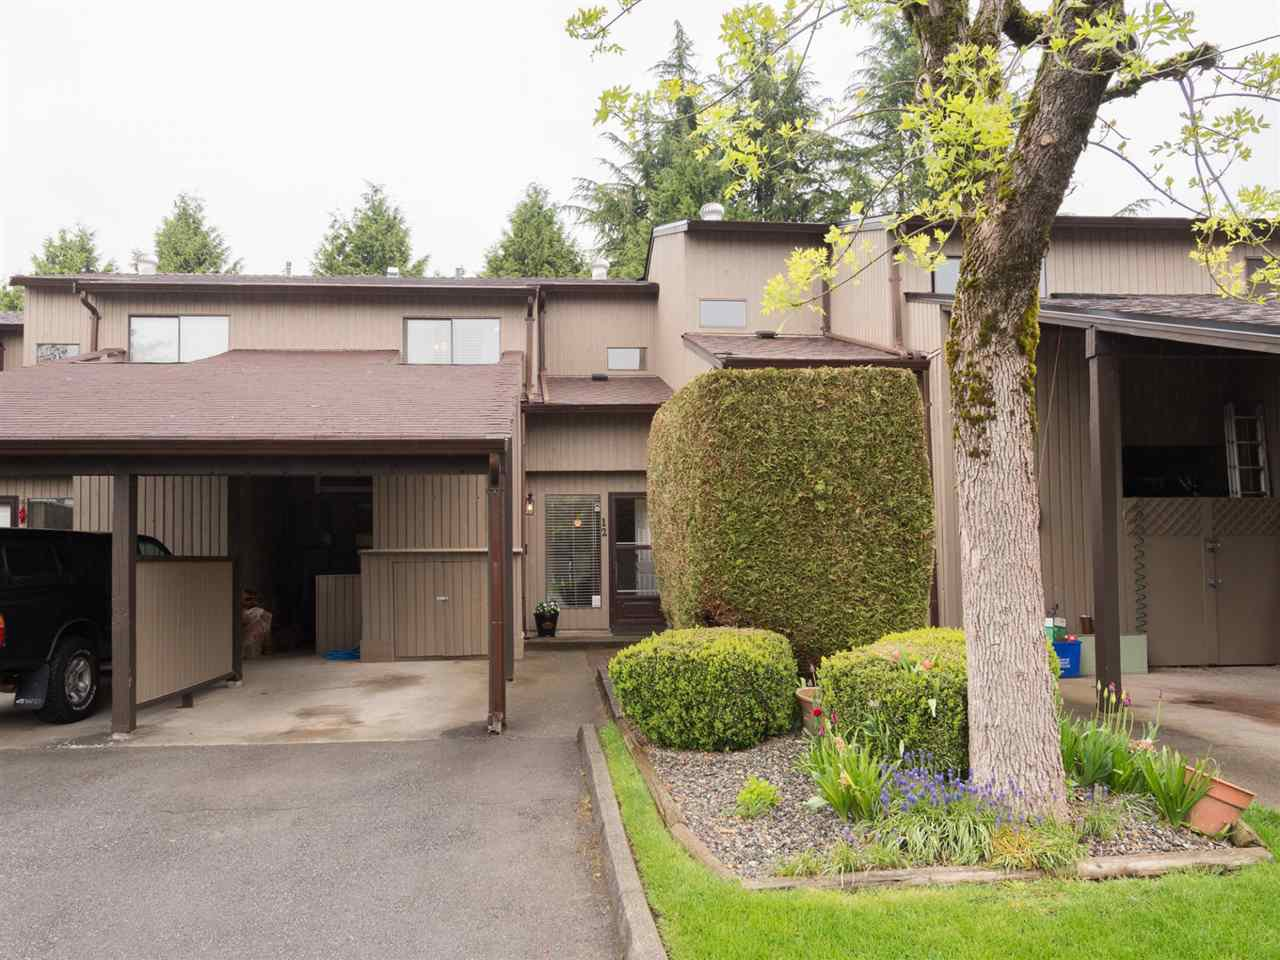 Main Photo: 12 27044 32 AVENUE in : Aldergrove Langley Townhouse for sale : MLS®# R2296126